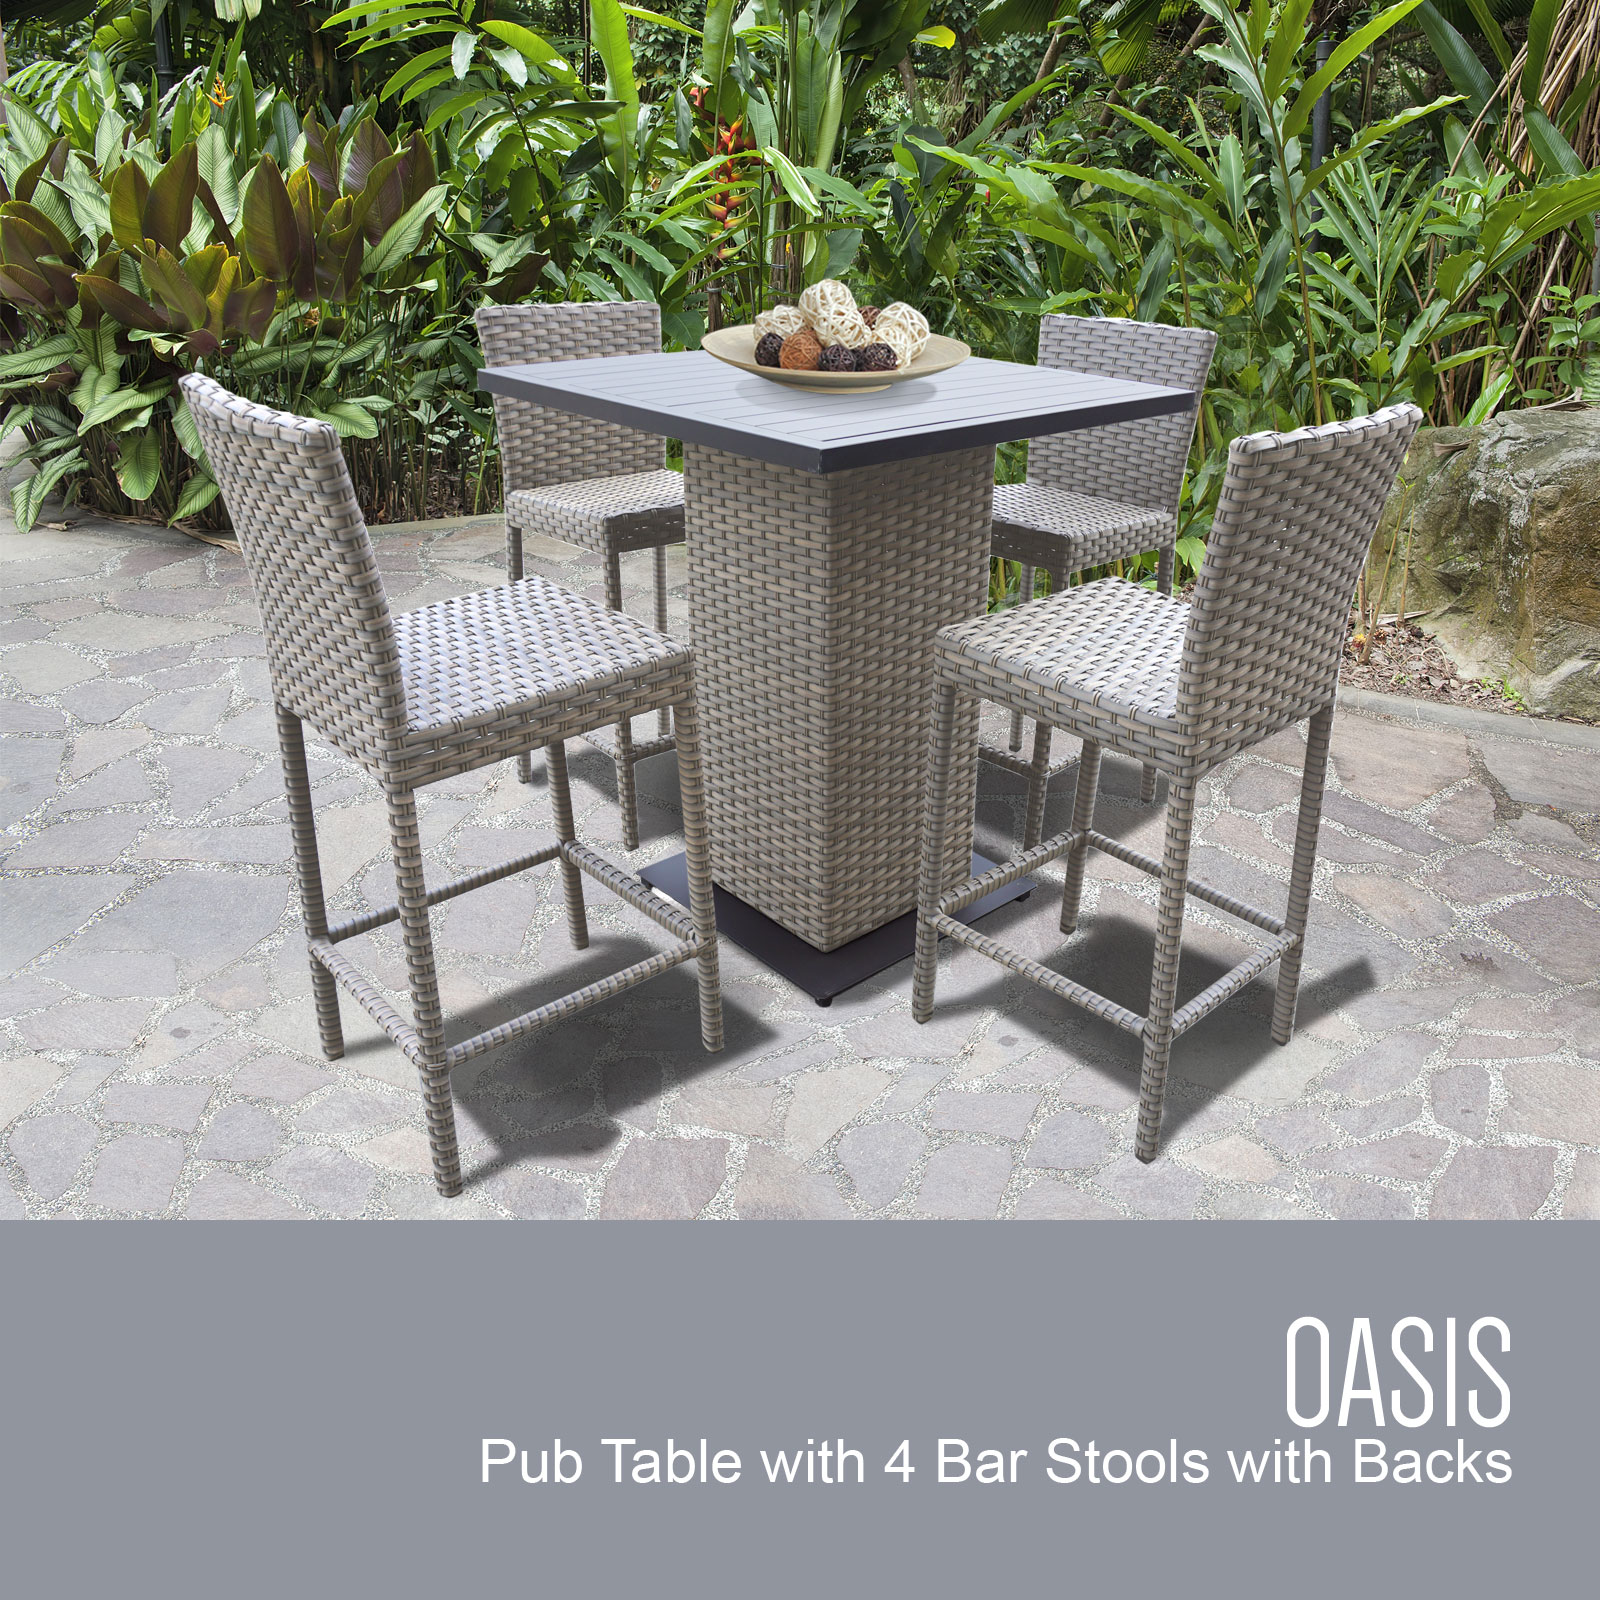 Oasis Pub Table Set With Bar Stools 5 Piece Outdoor Wicker Patio Furniture-Color:Grey Stone by TK Classics